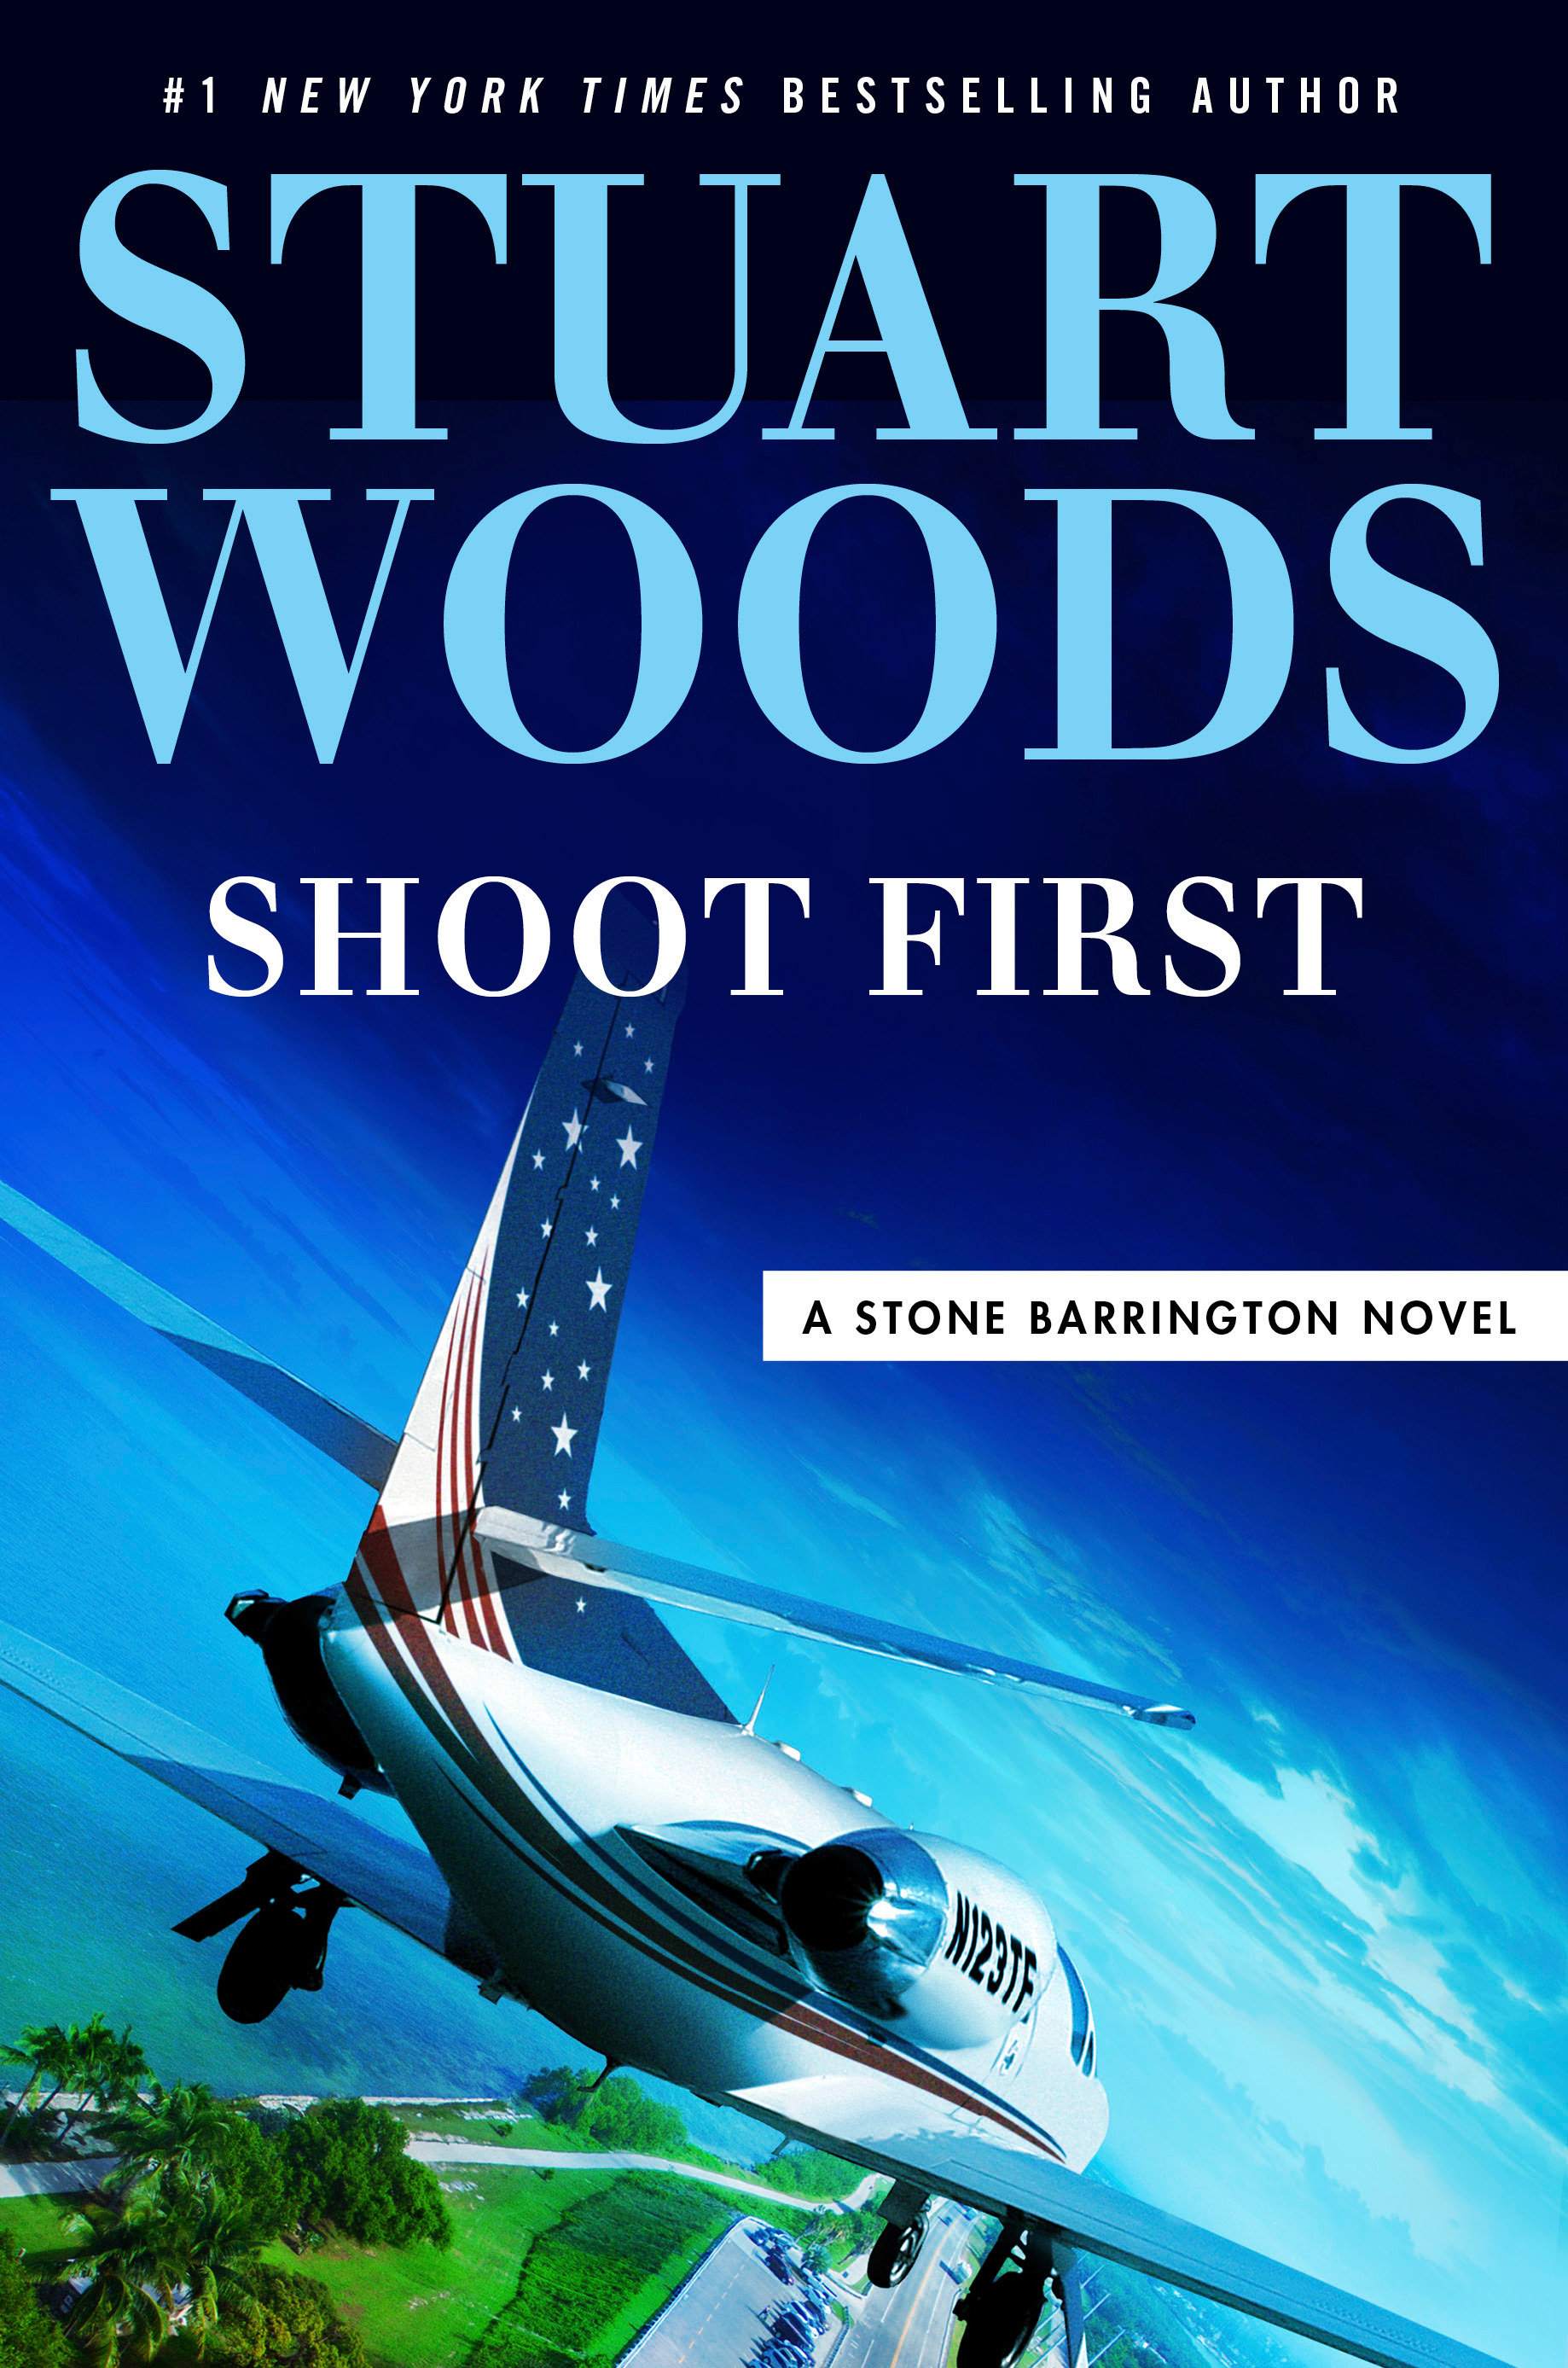 Shoot first (think later) cover image